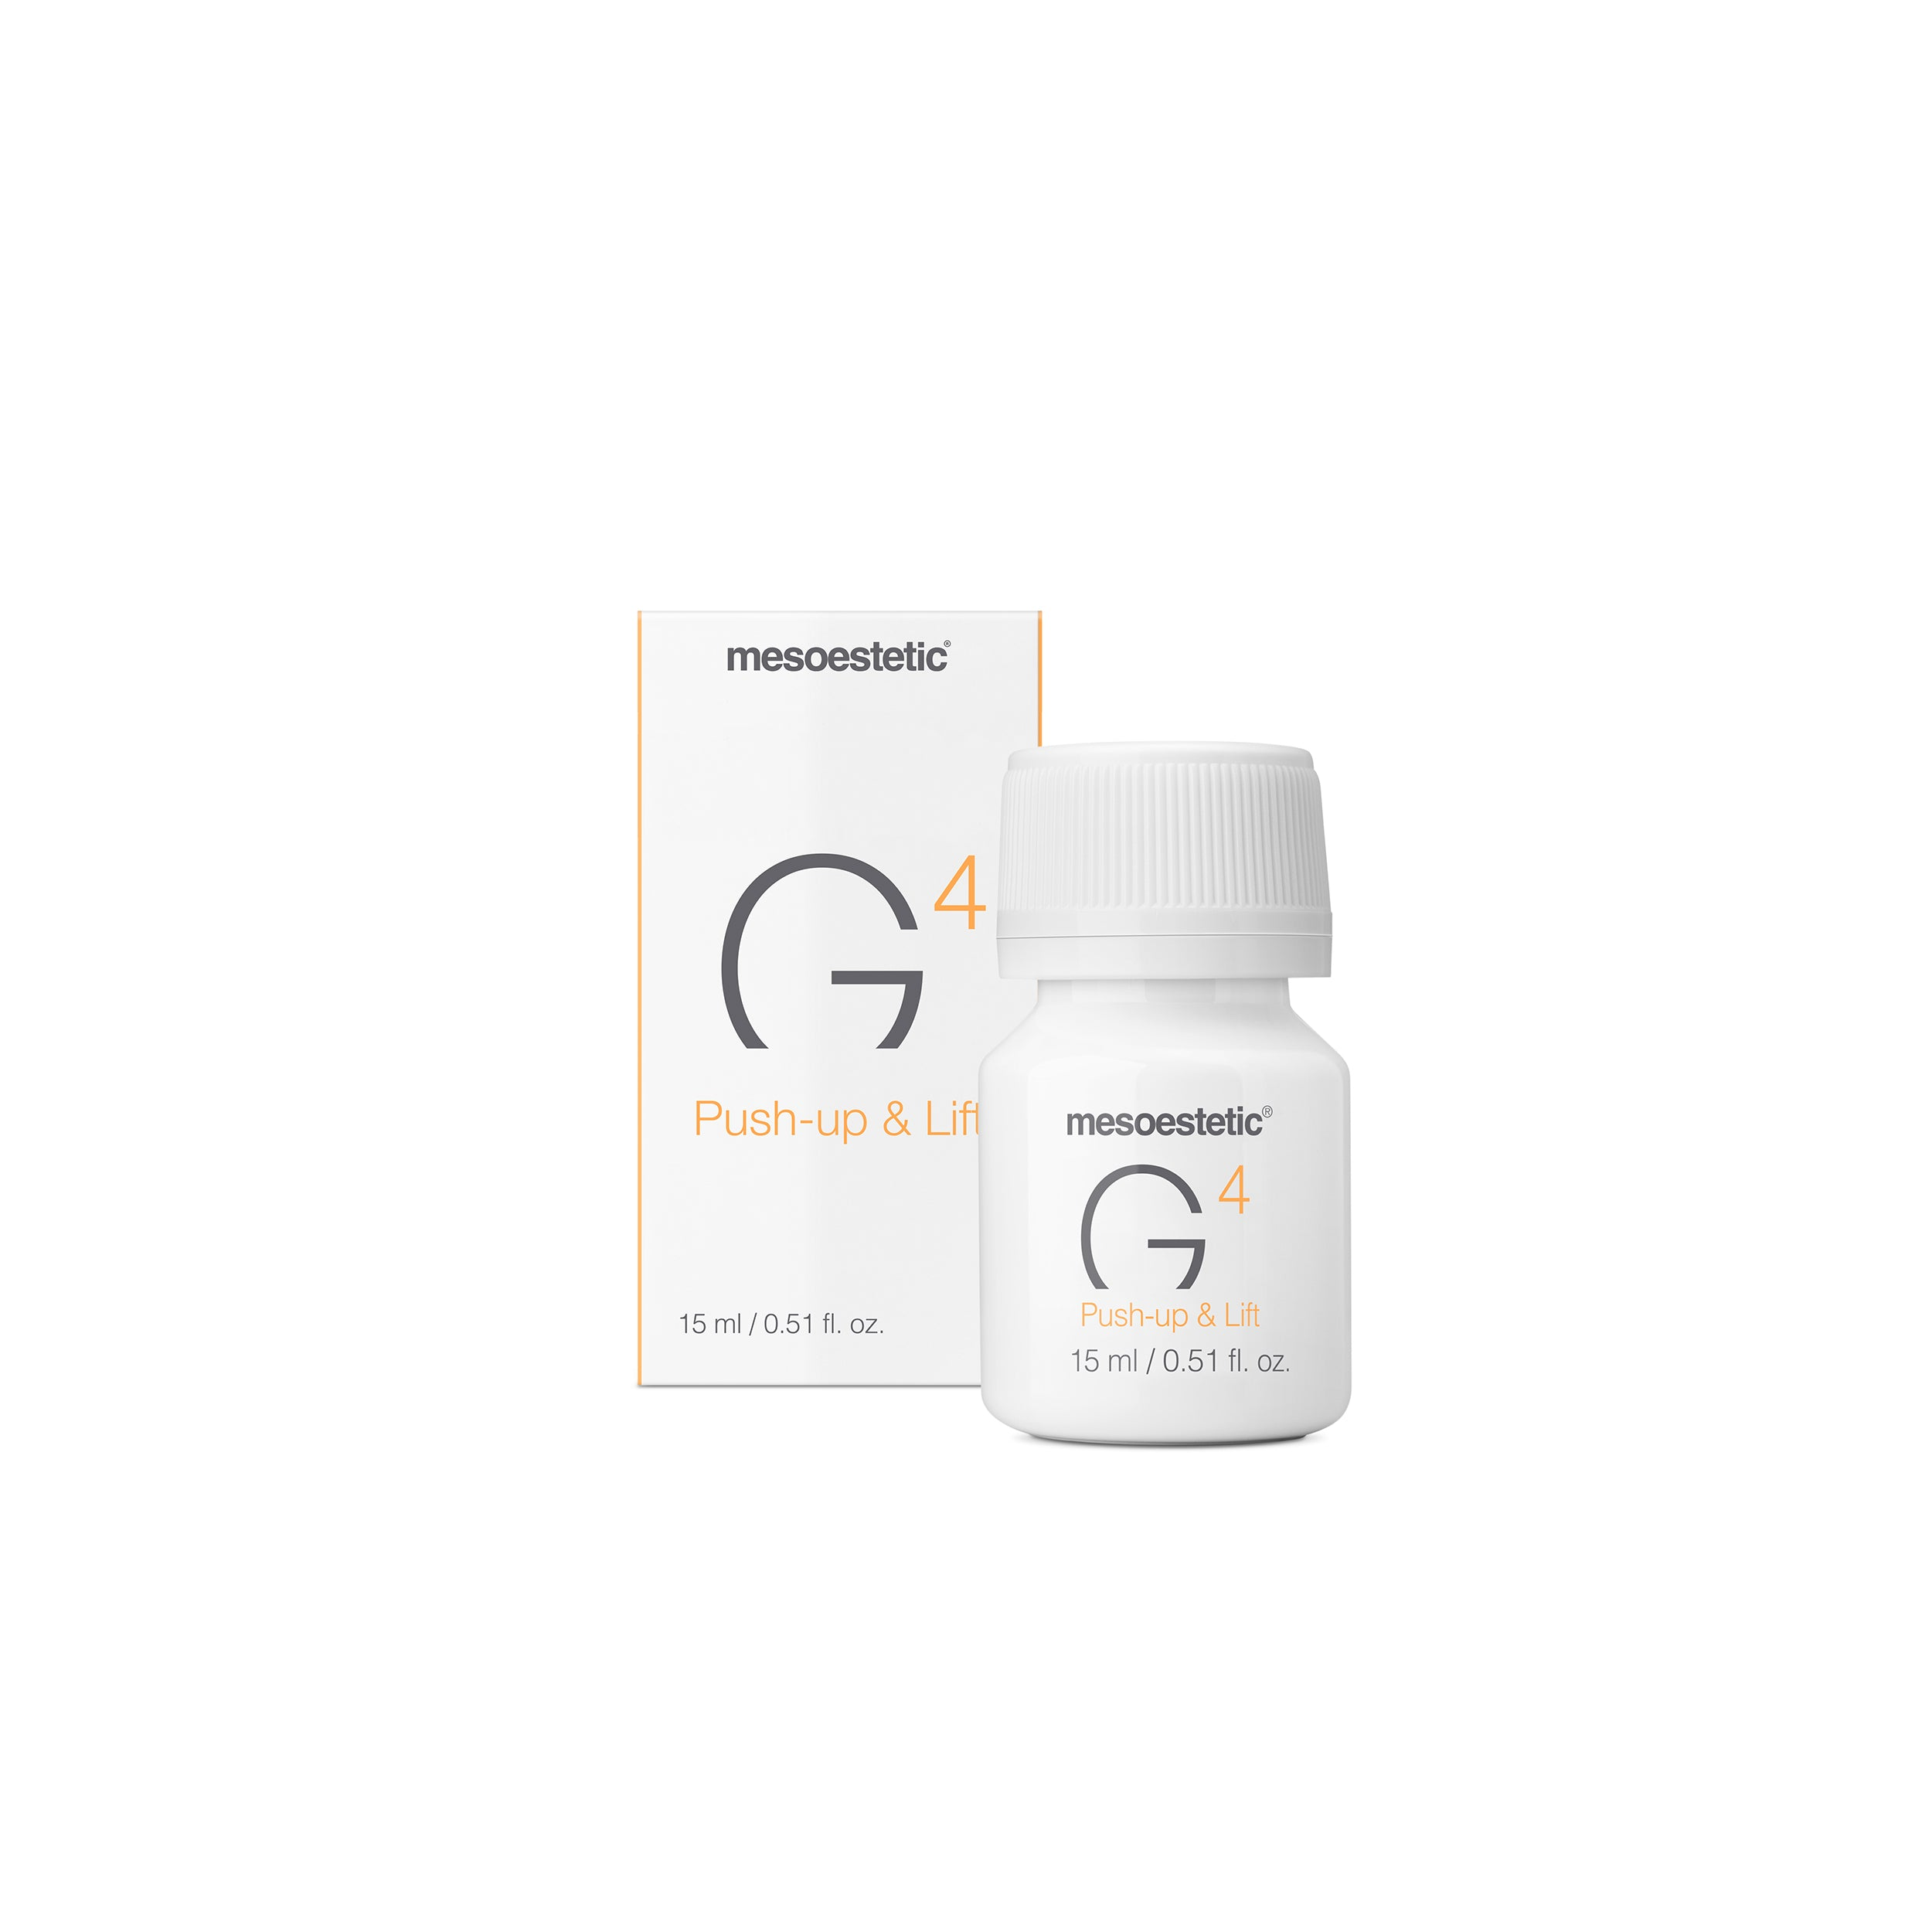 G4 push-up & lift - 15 ml